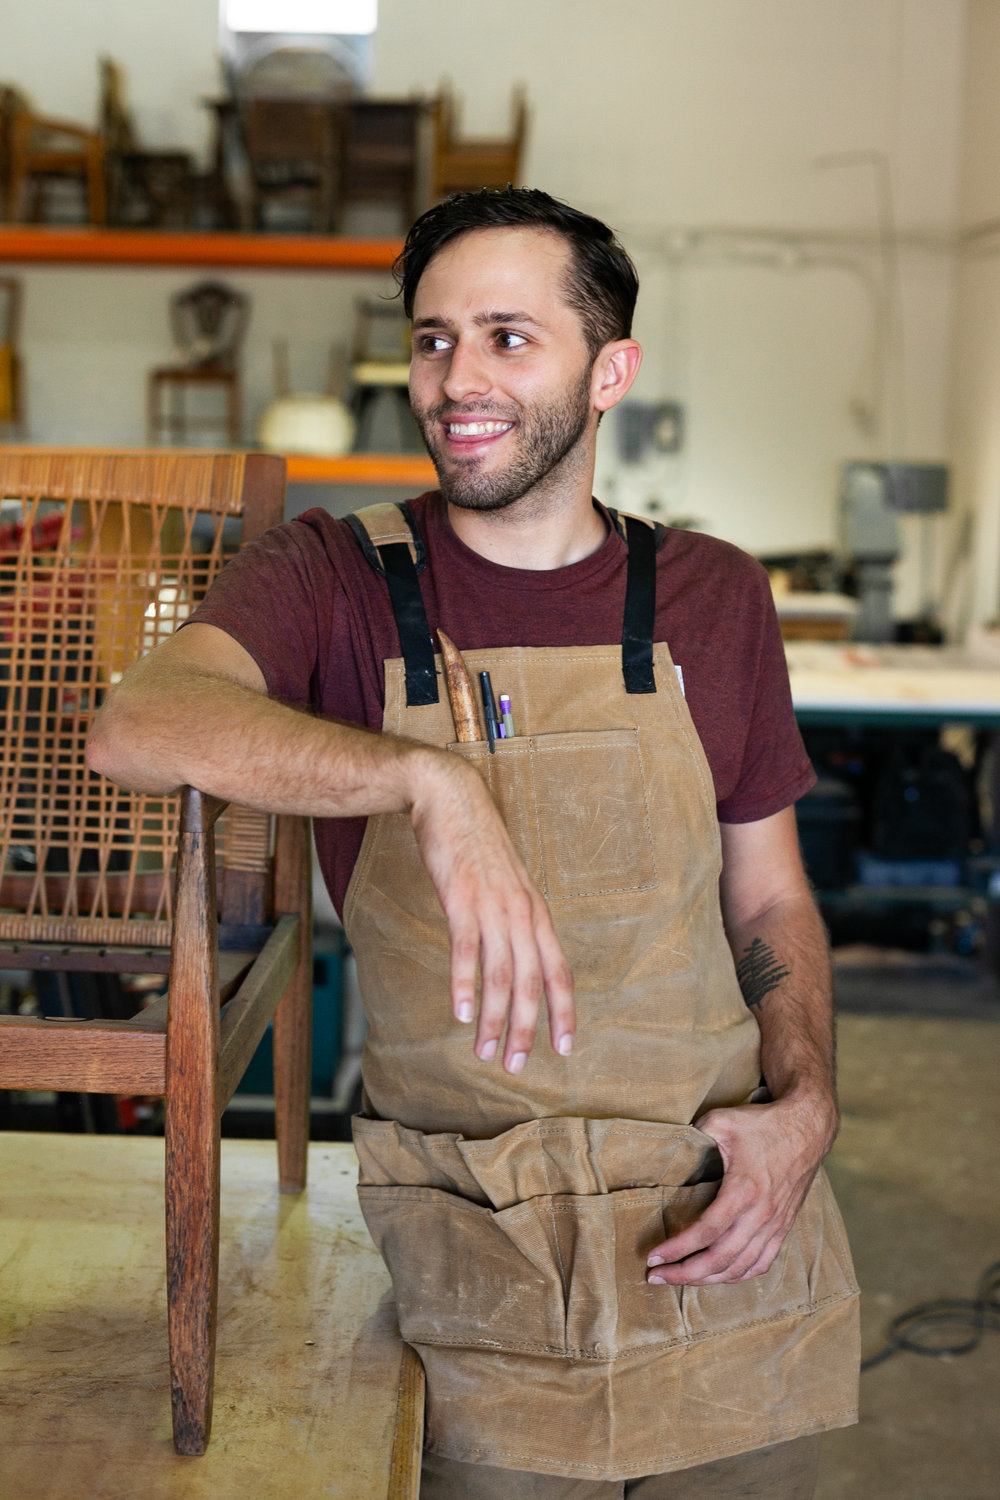 Jacob - younger brother to Sam and co-founder of Kin Furniture Co.